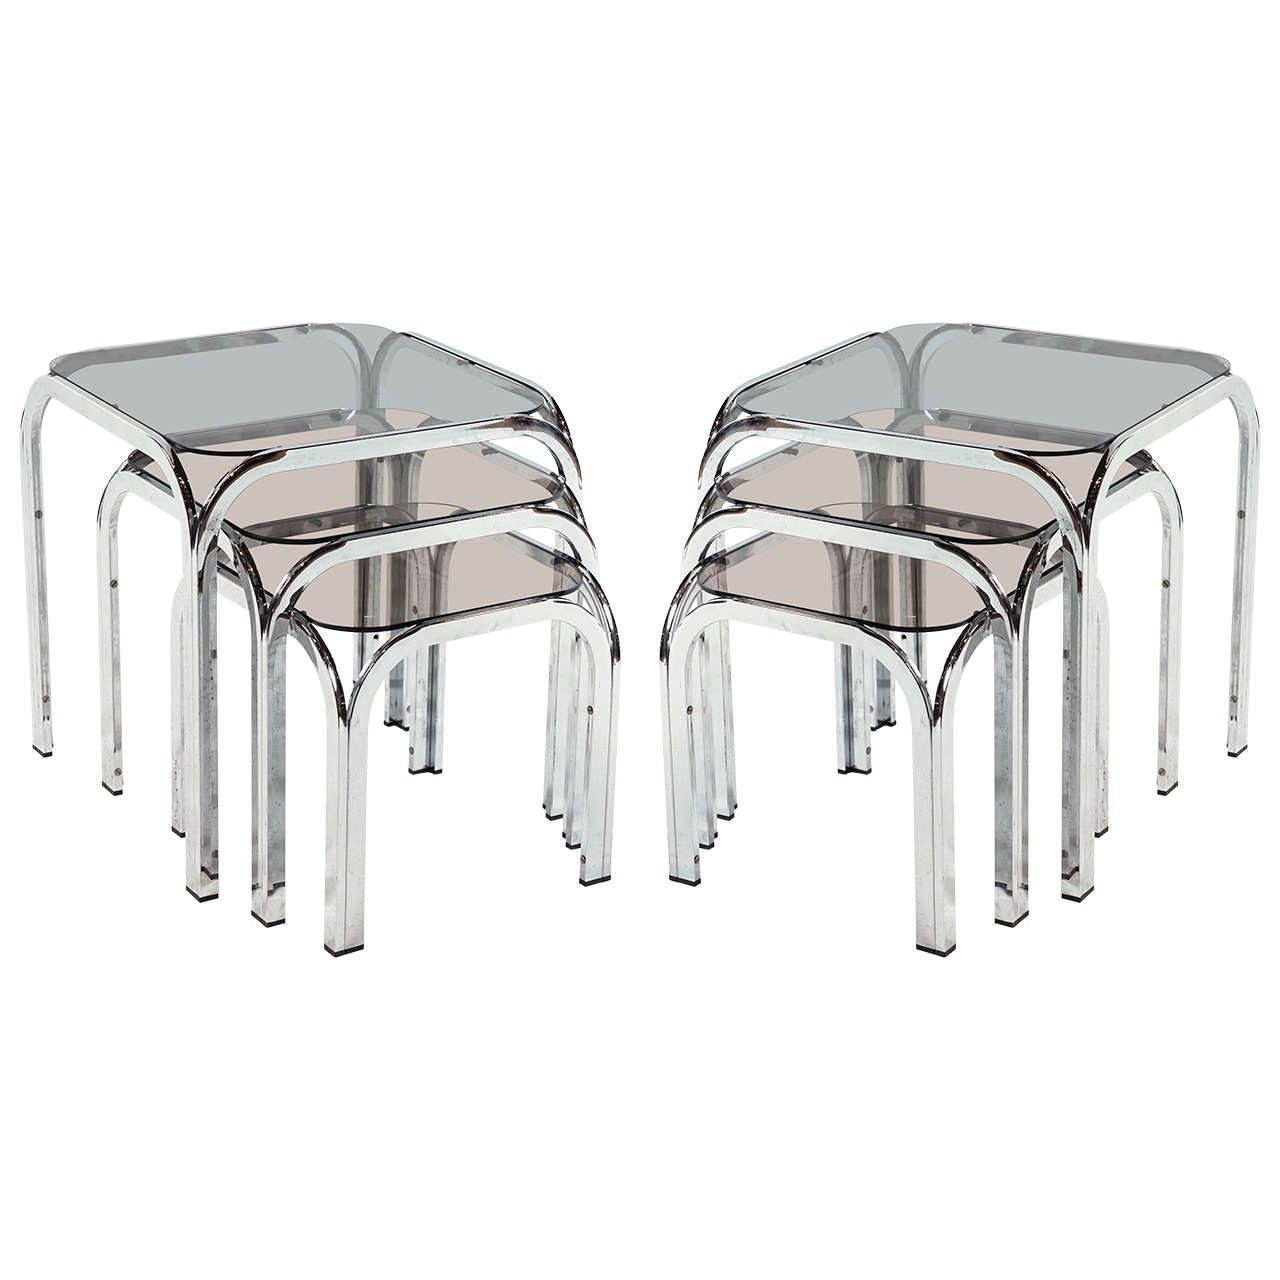 Pair Of Chrome And Smoked Gl Nesting Tables